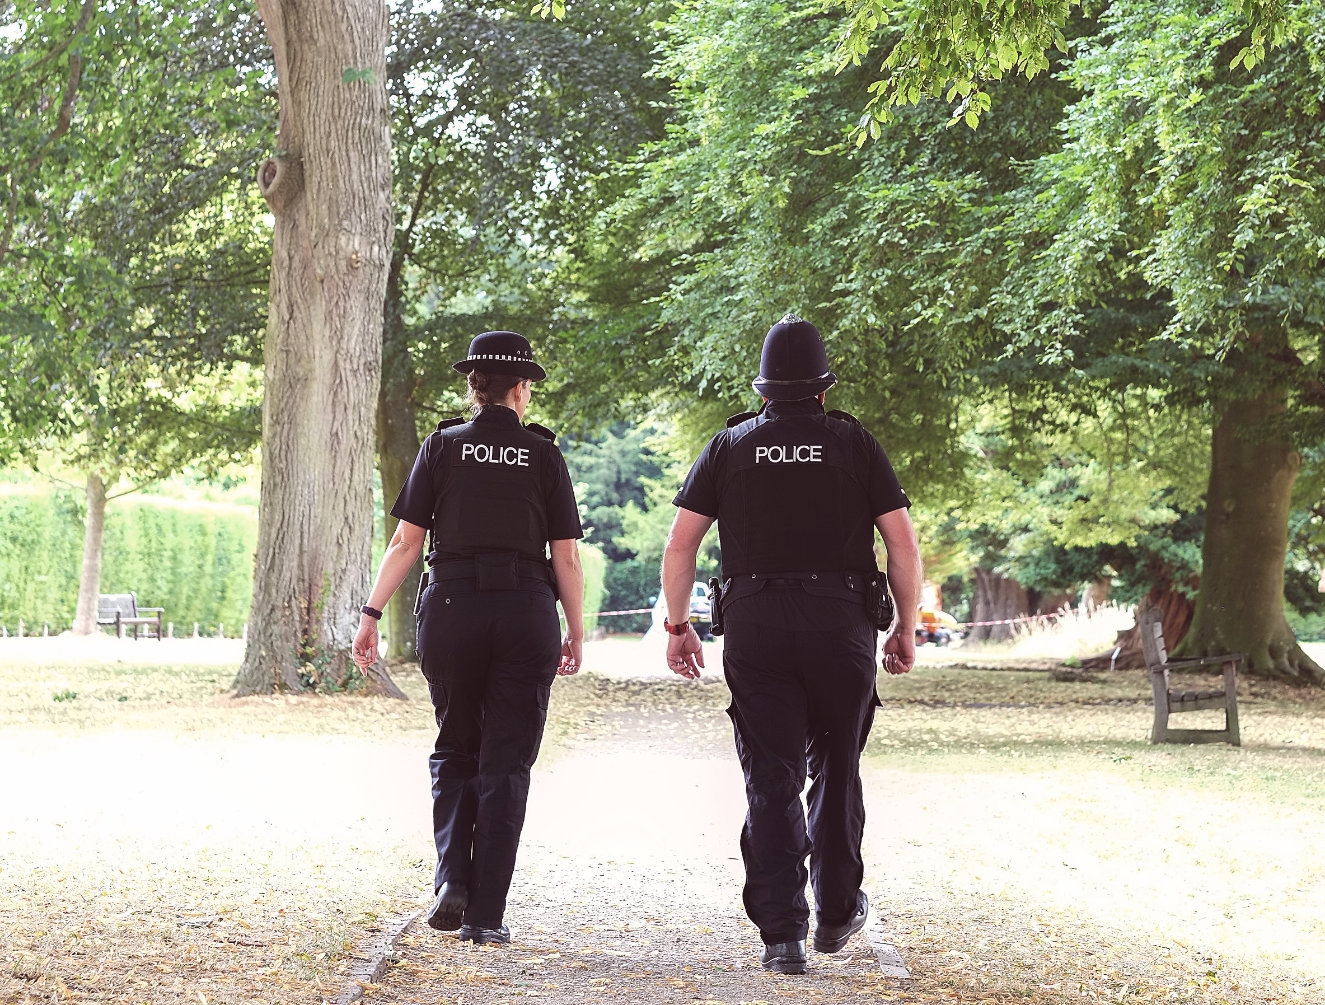 Police officers walking through a park